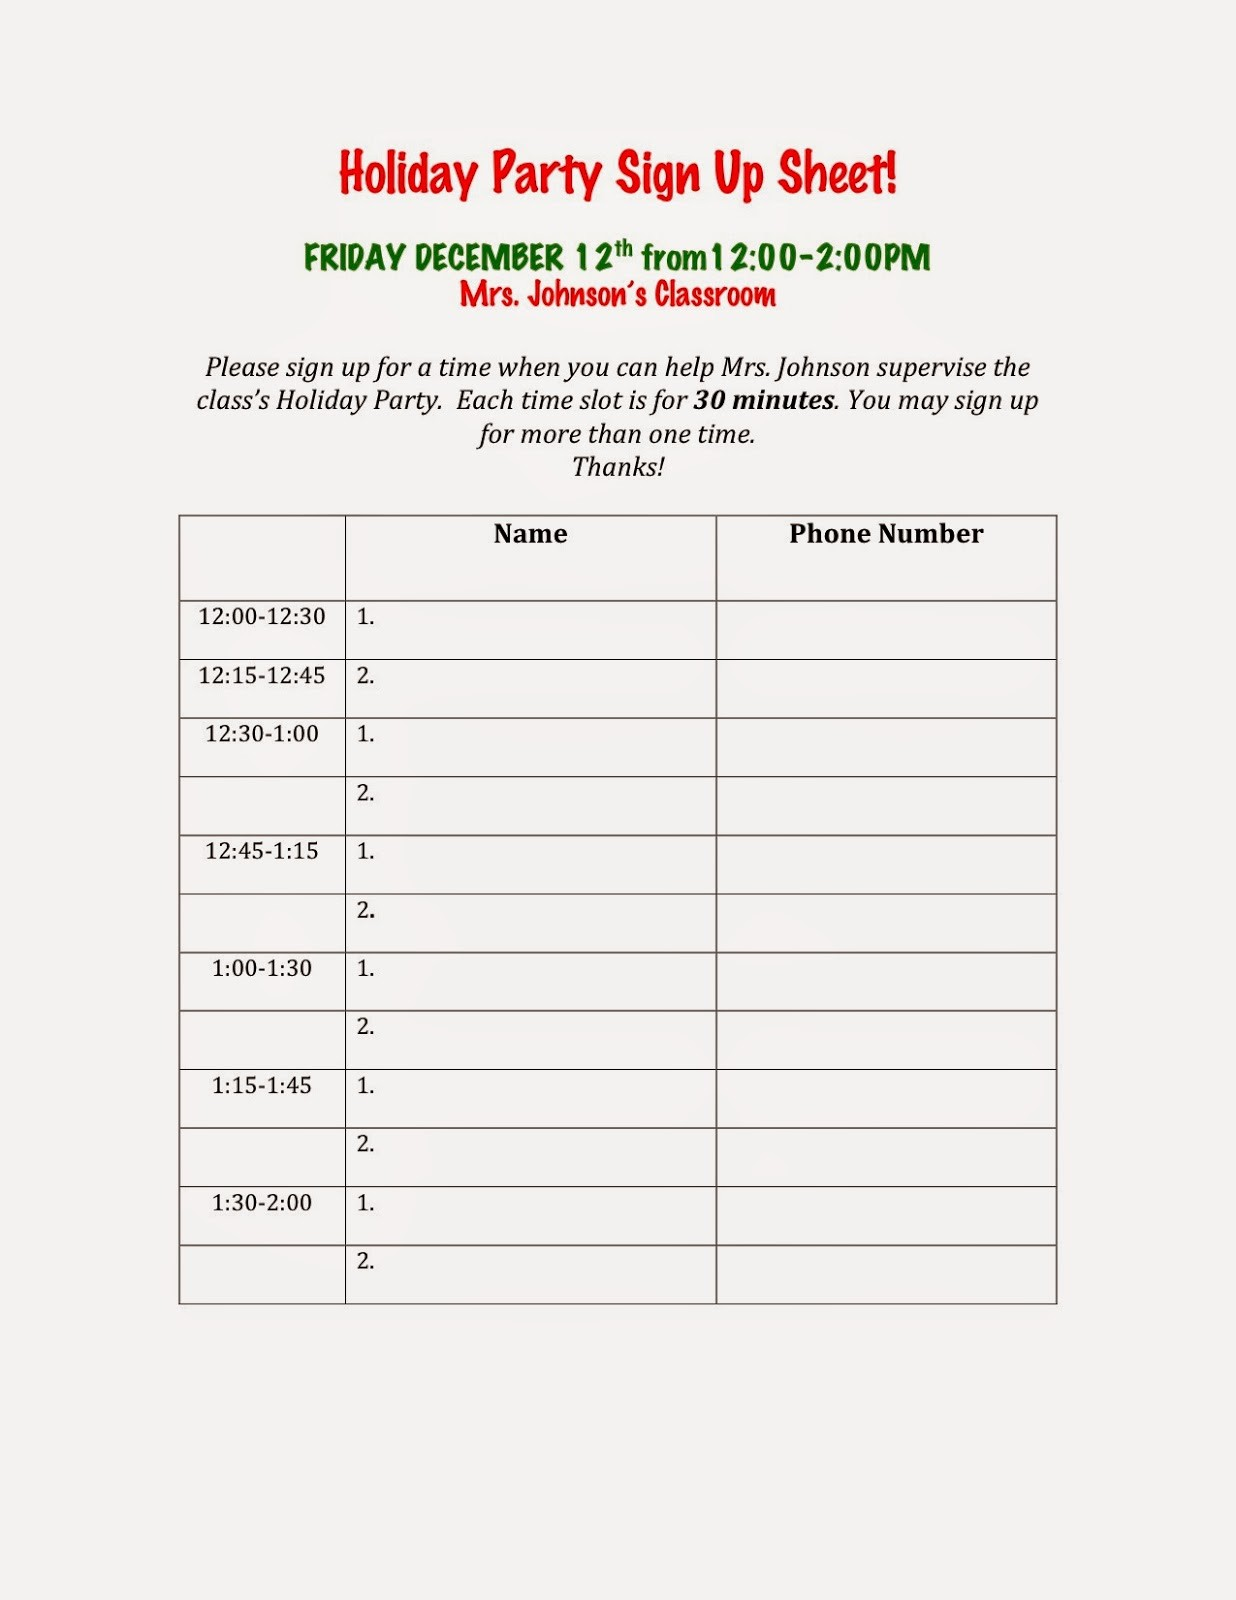 Christmas Sign Up Sheet Templates Beautiful Avenue B Holiday Party Sign Up Sheets